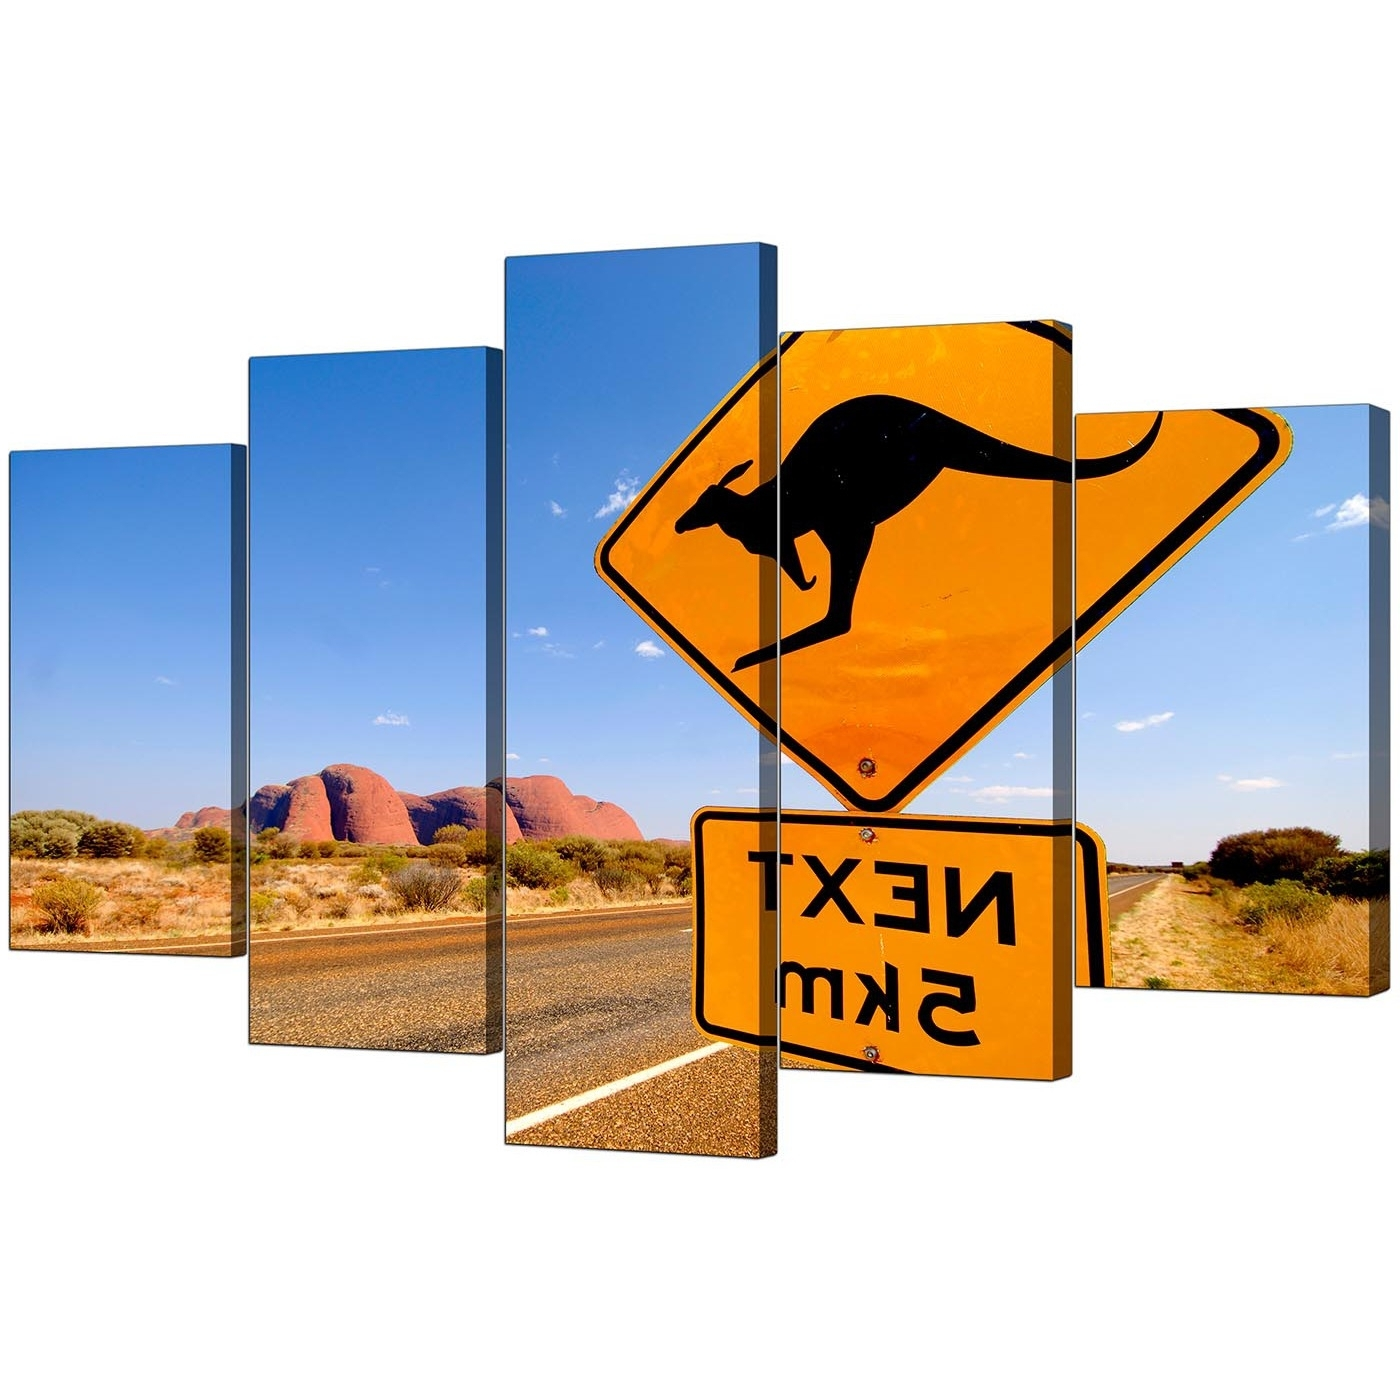 Widely Used Canvas Wall Art In Australia Regarding Australia Canvas Prints For Your Living Room – 5 Panel (View 15 of 15)